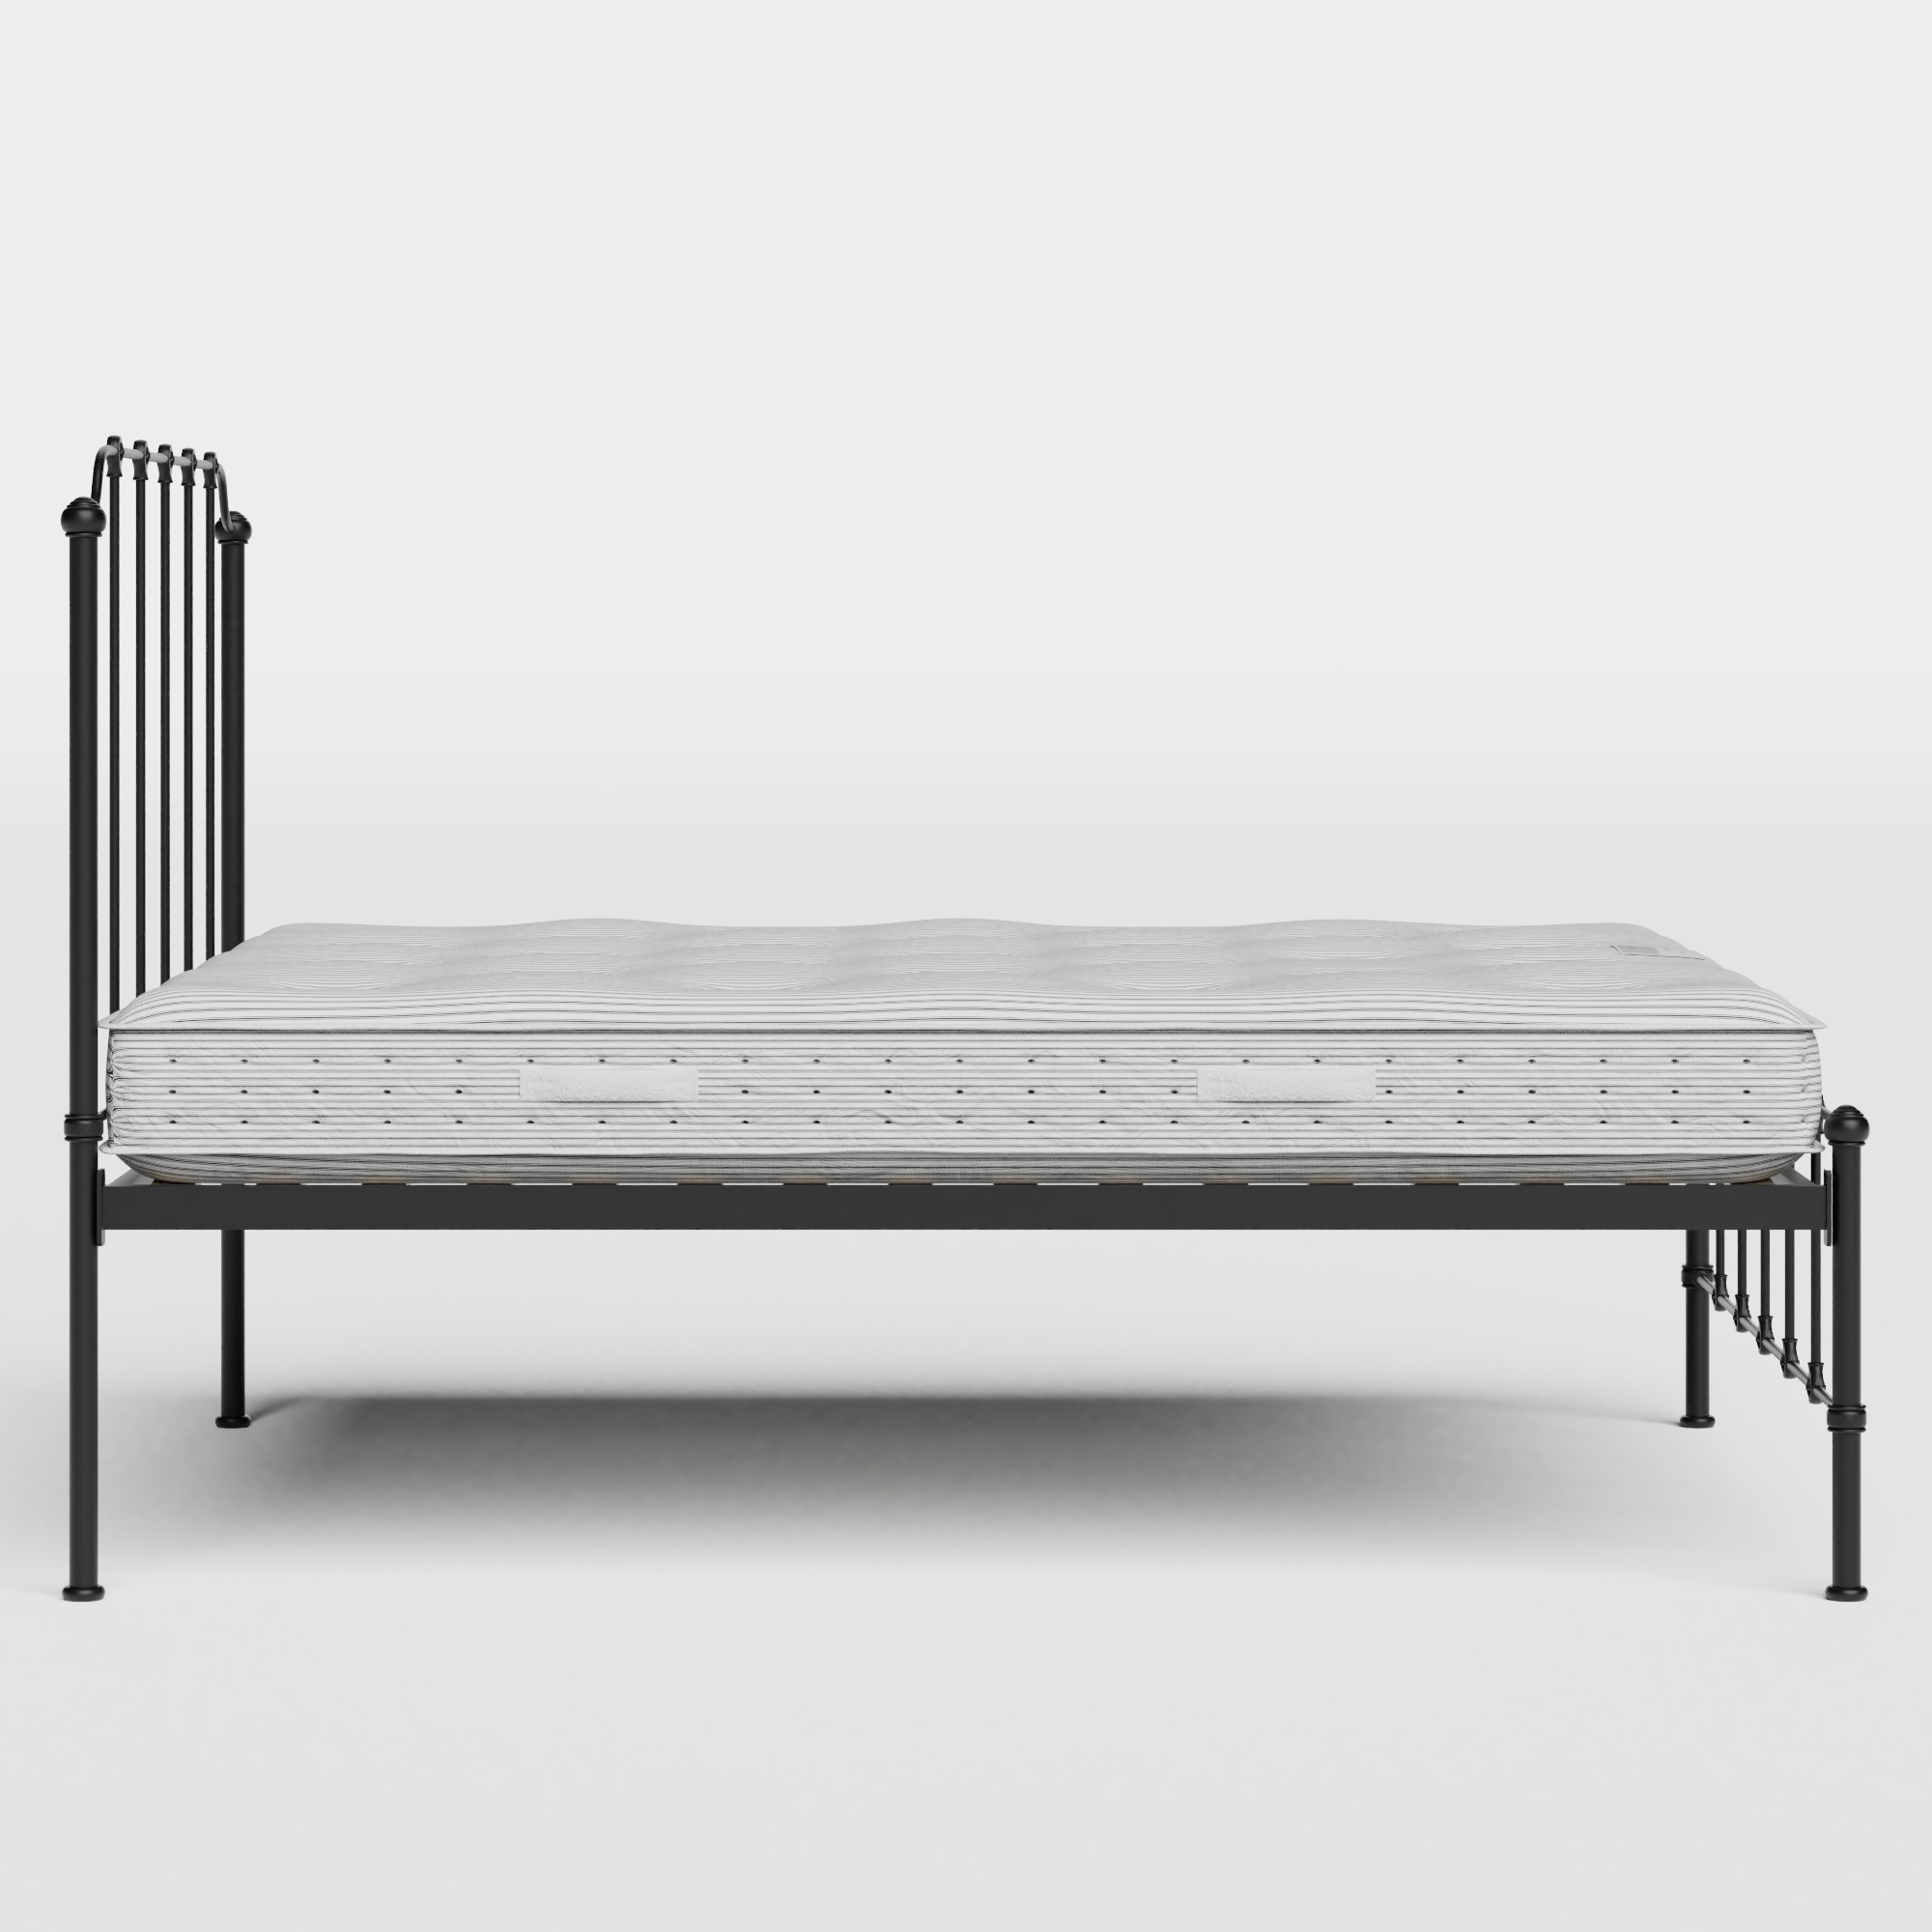 Julia iron/metal bed in black with Juno mattress